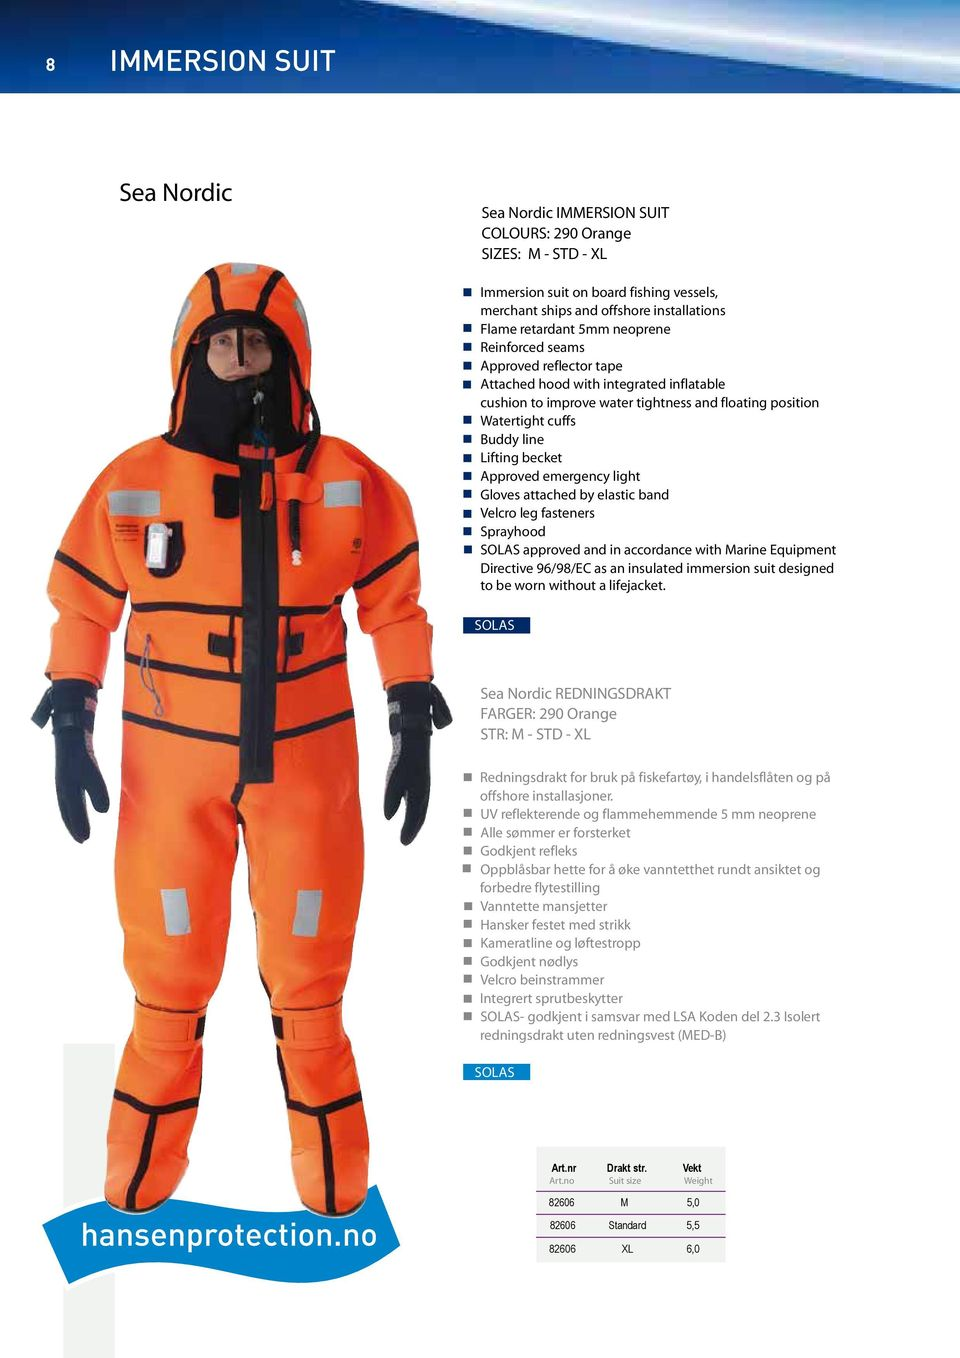 emergency light Gloves attached by elastic band Velcro leg fasteners Sprayhood approved and in accordance with Marine Equipment Directive 96/98/EC as an insulated immersion suit designed to be worn